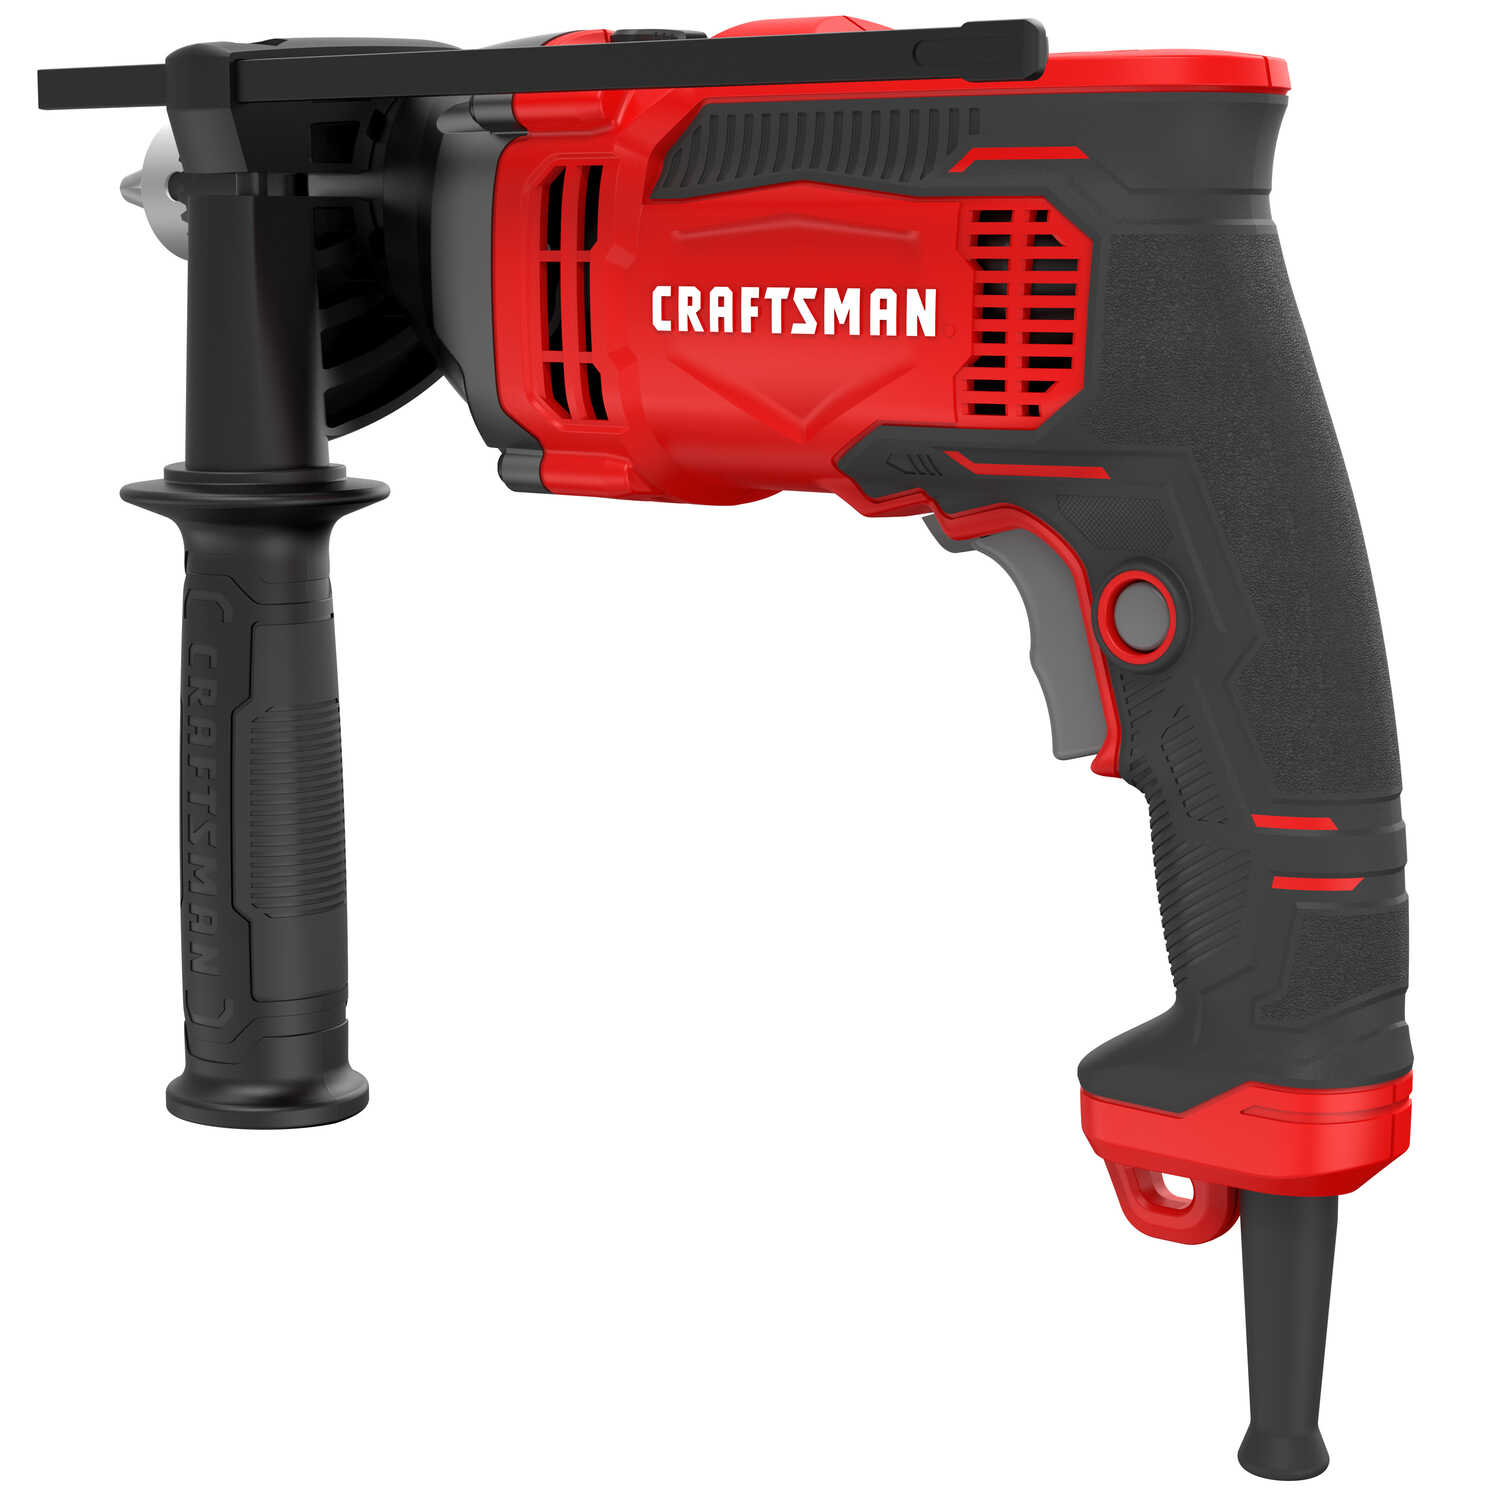 Craftsman 1 2 In Keyed Corded Hammer Drill Kit 7 Amps 3100 Rpm 52700 Bpm Red Ace Hardware